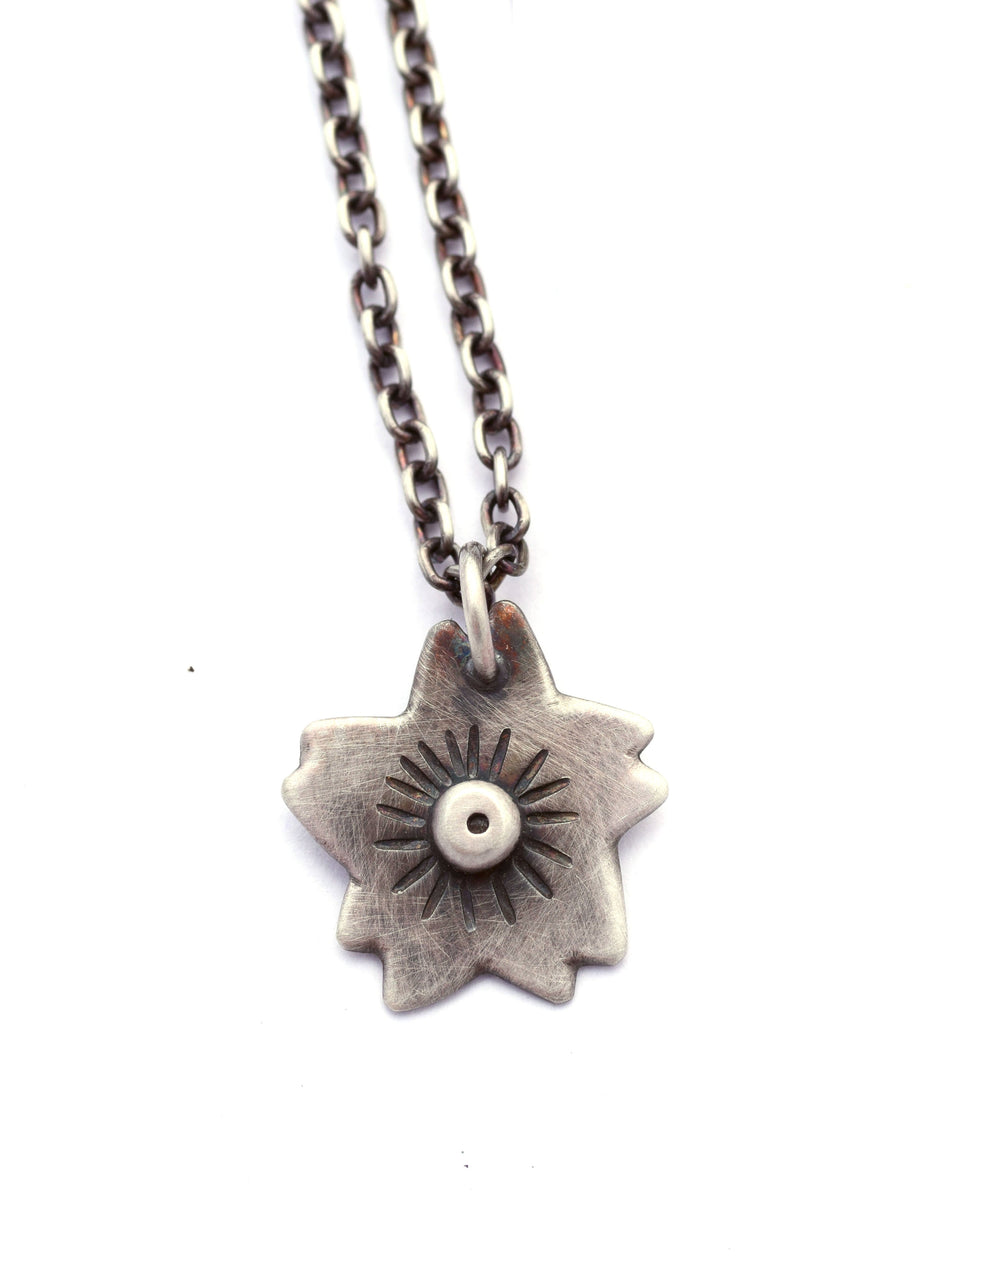 Erin Austin necklace, Cherry Blossom or Hexagon Pendant